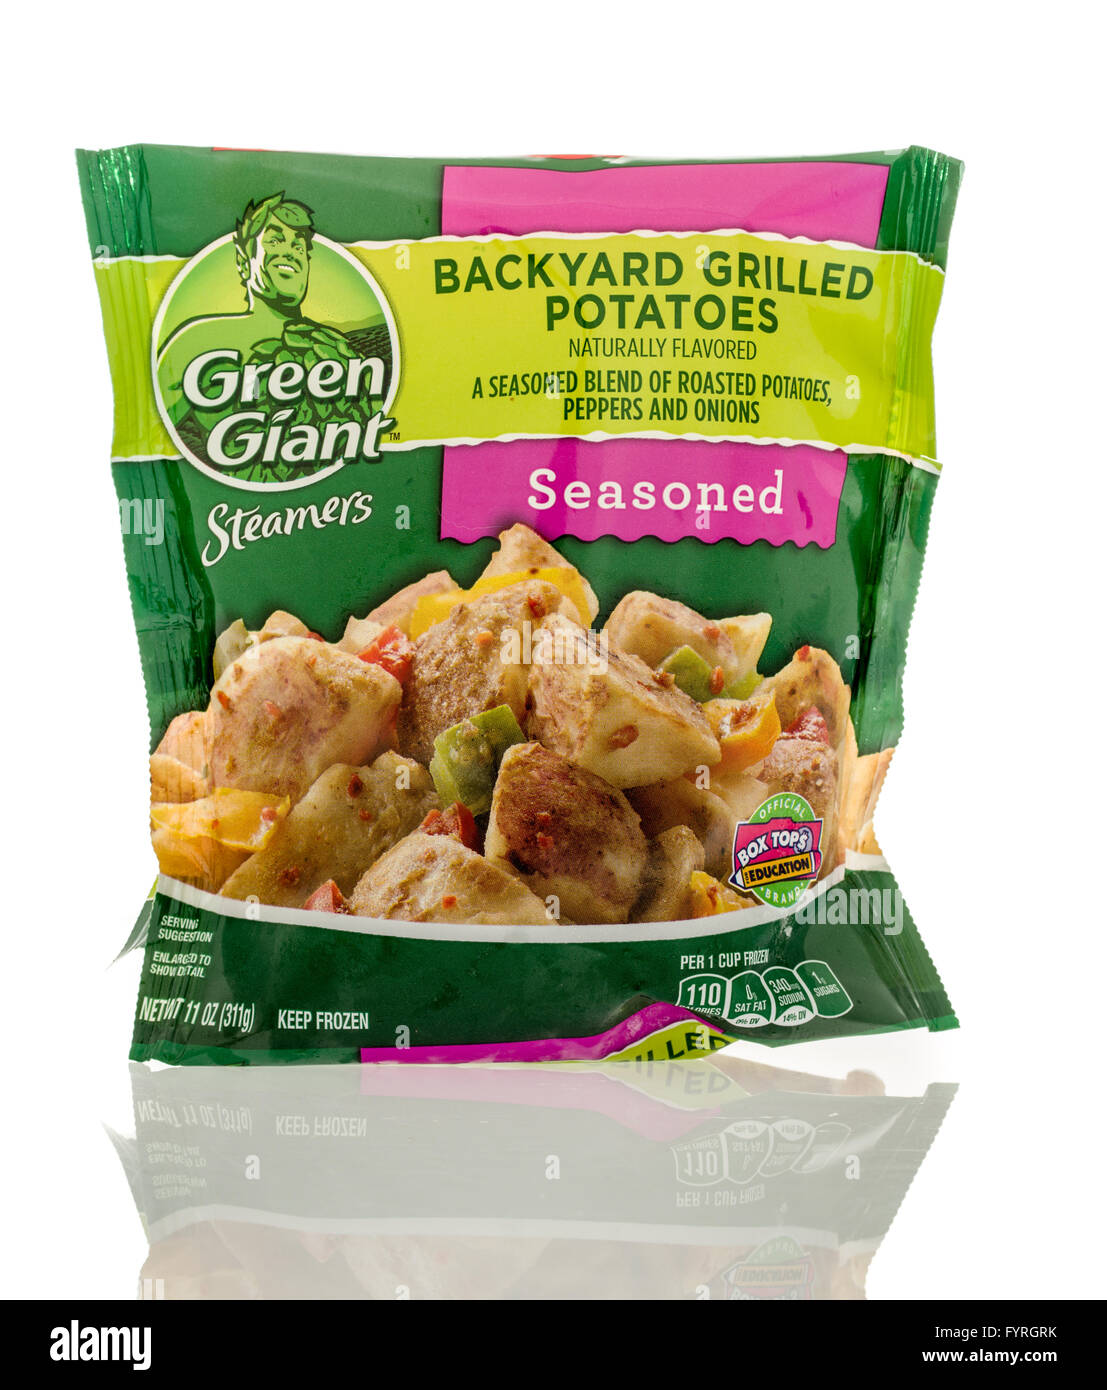 Winneconne, WI - 13 March 2016: A bag of Green Giant backyard grilled potatoes - Stock Image